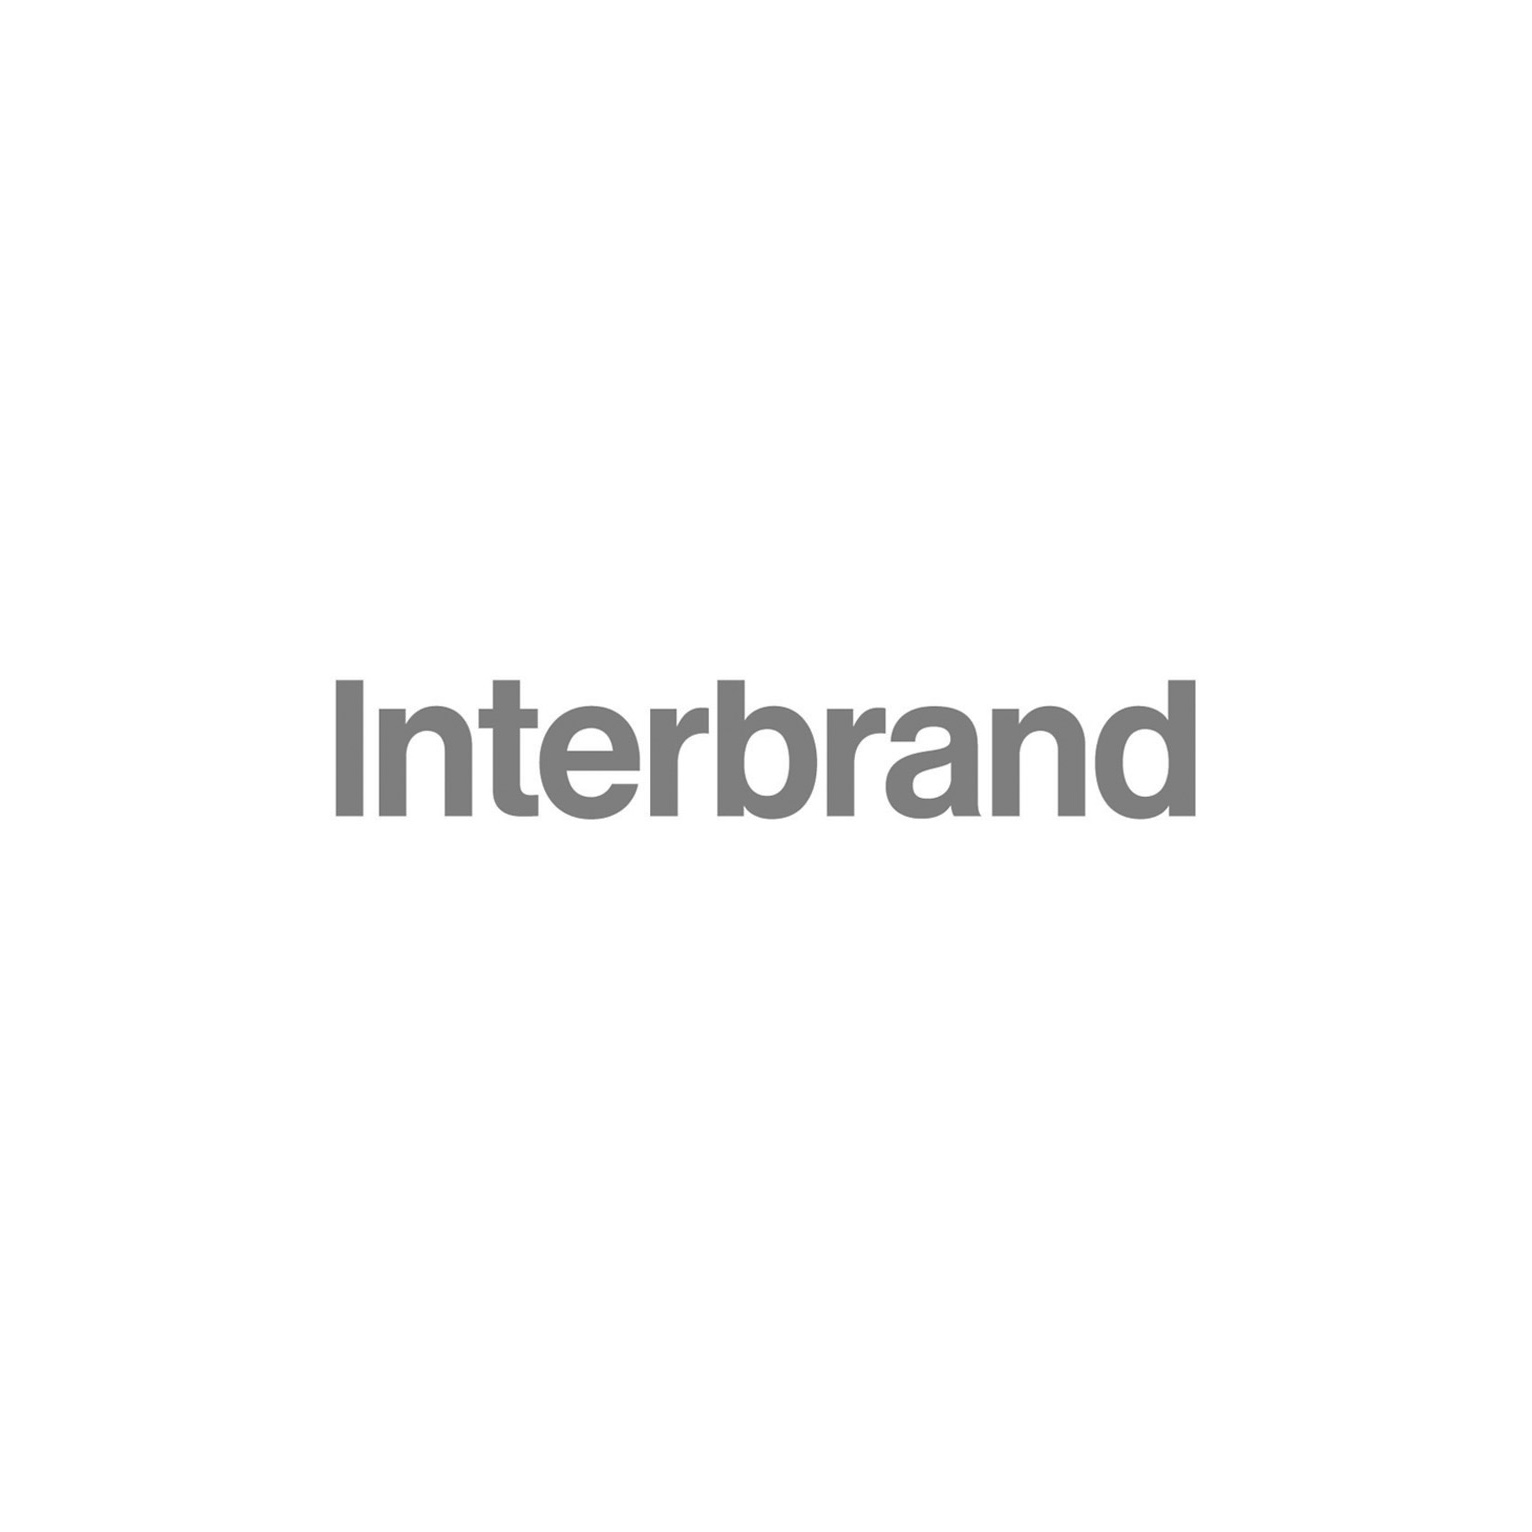 img_partner_logo_interbrand_square.jpg